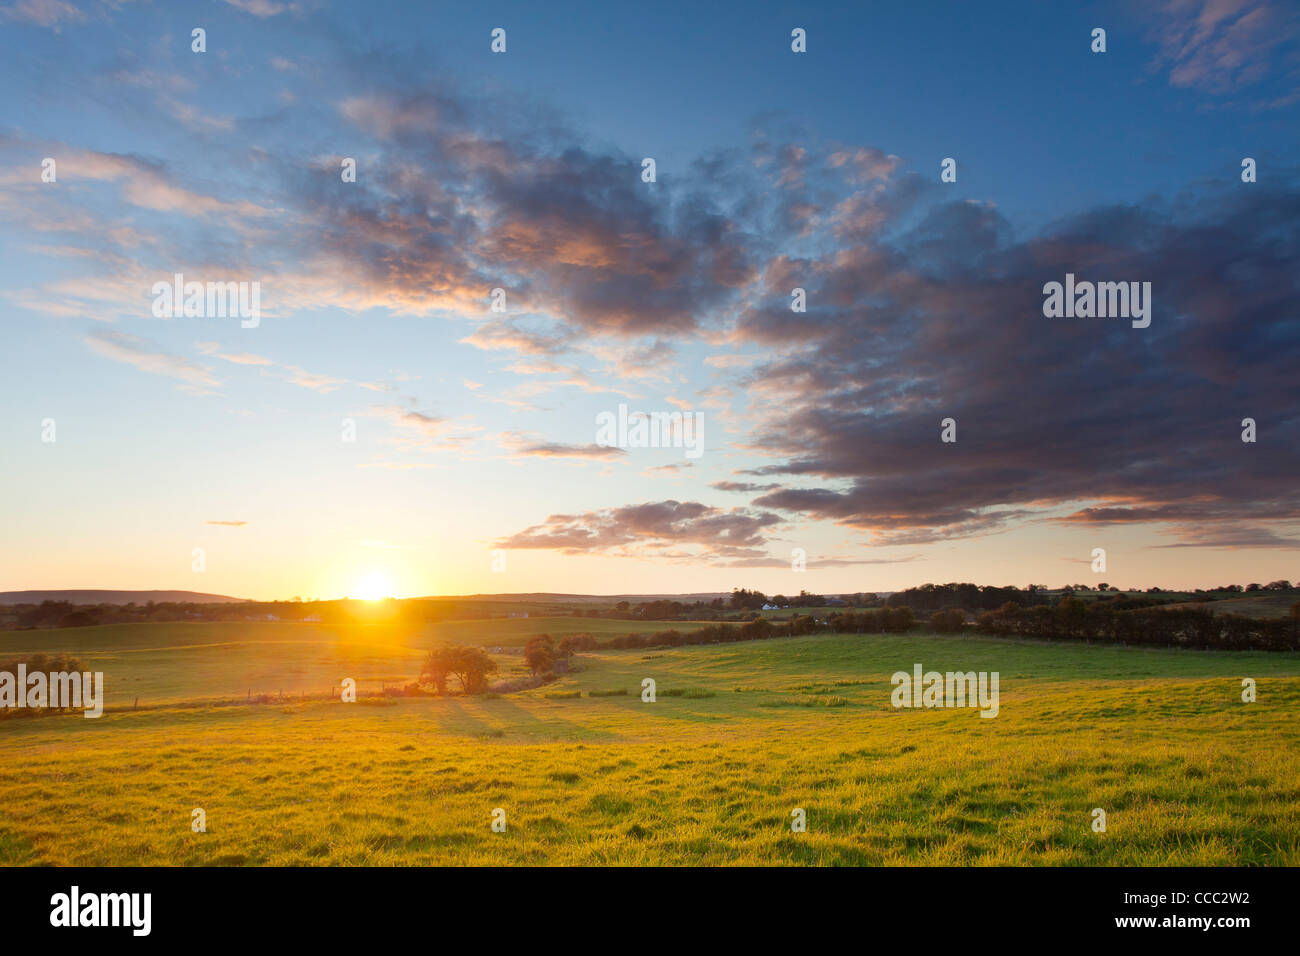 Meadow sunset, County Mayo, Ireland. - Stock Image